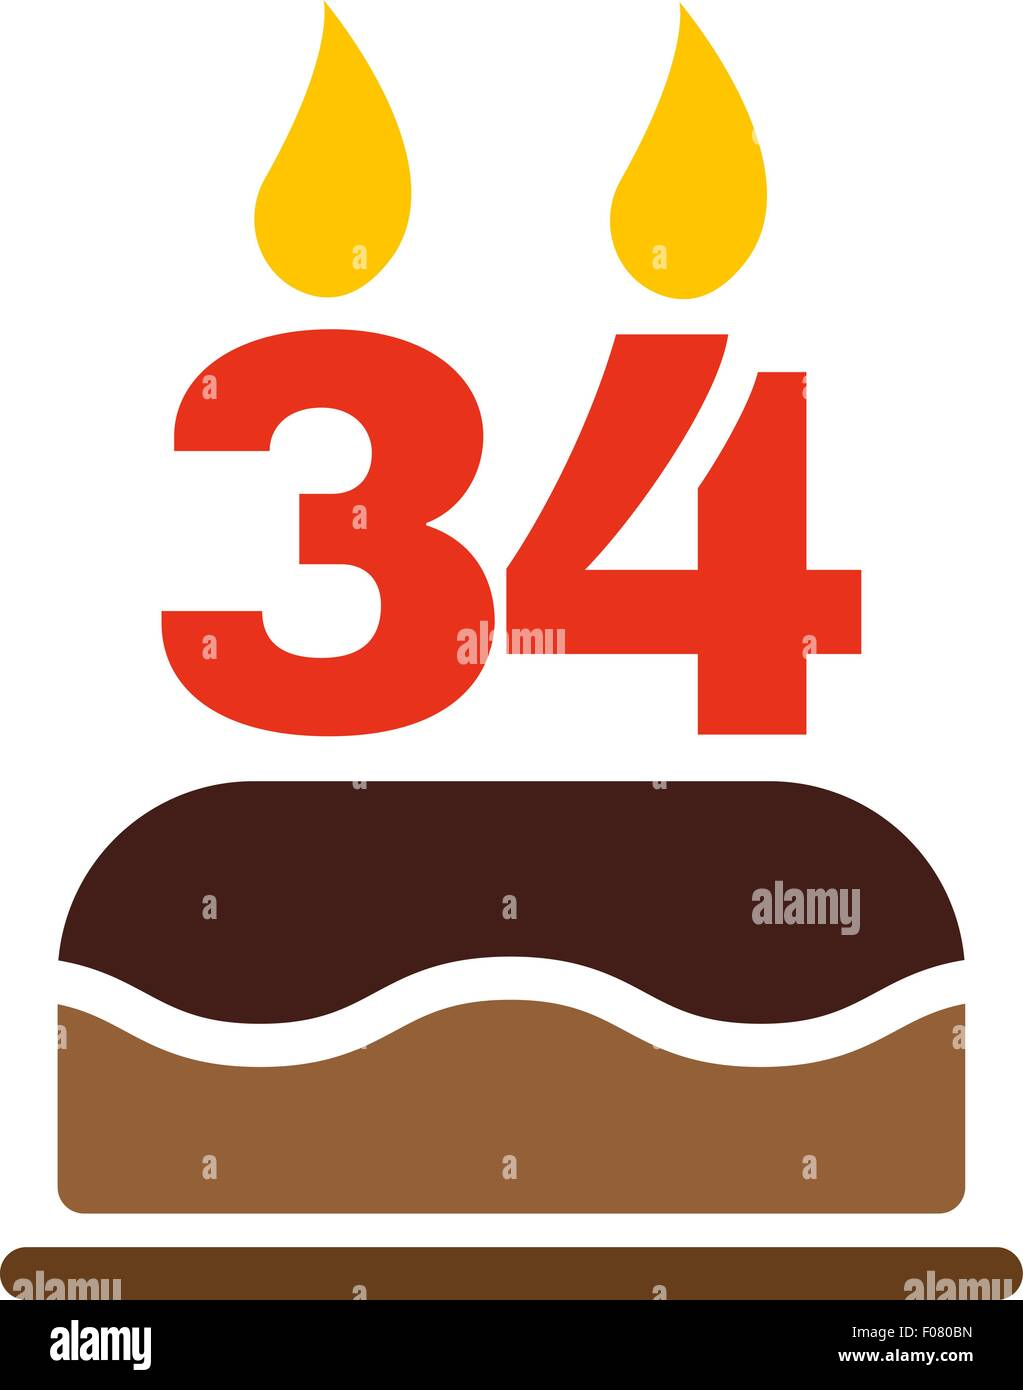 The Birthday Cake With Candles In The Form Of Number 34 Icon Stock